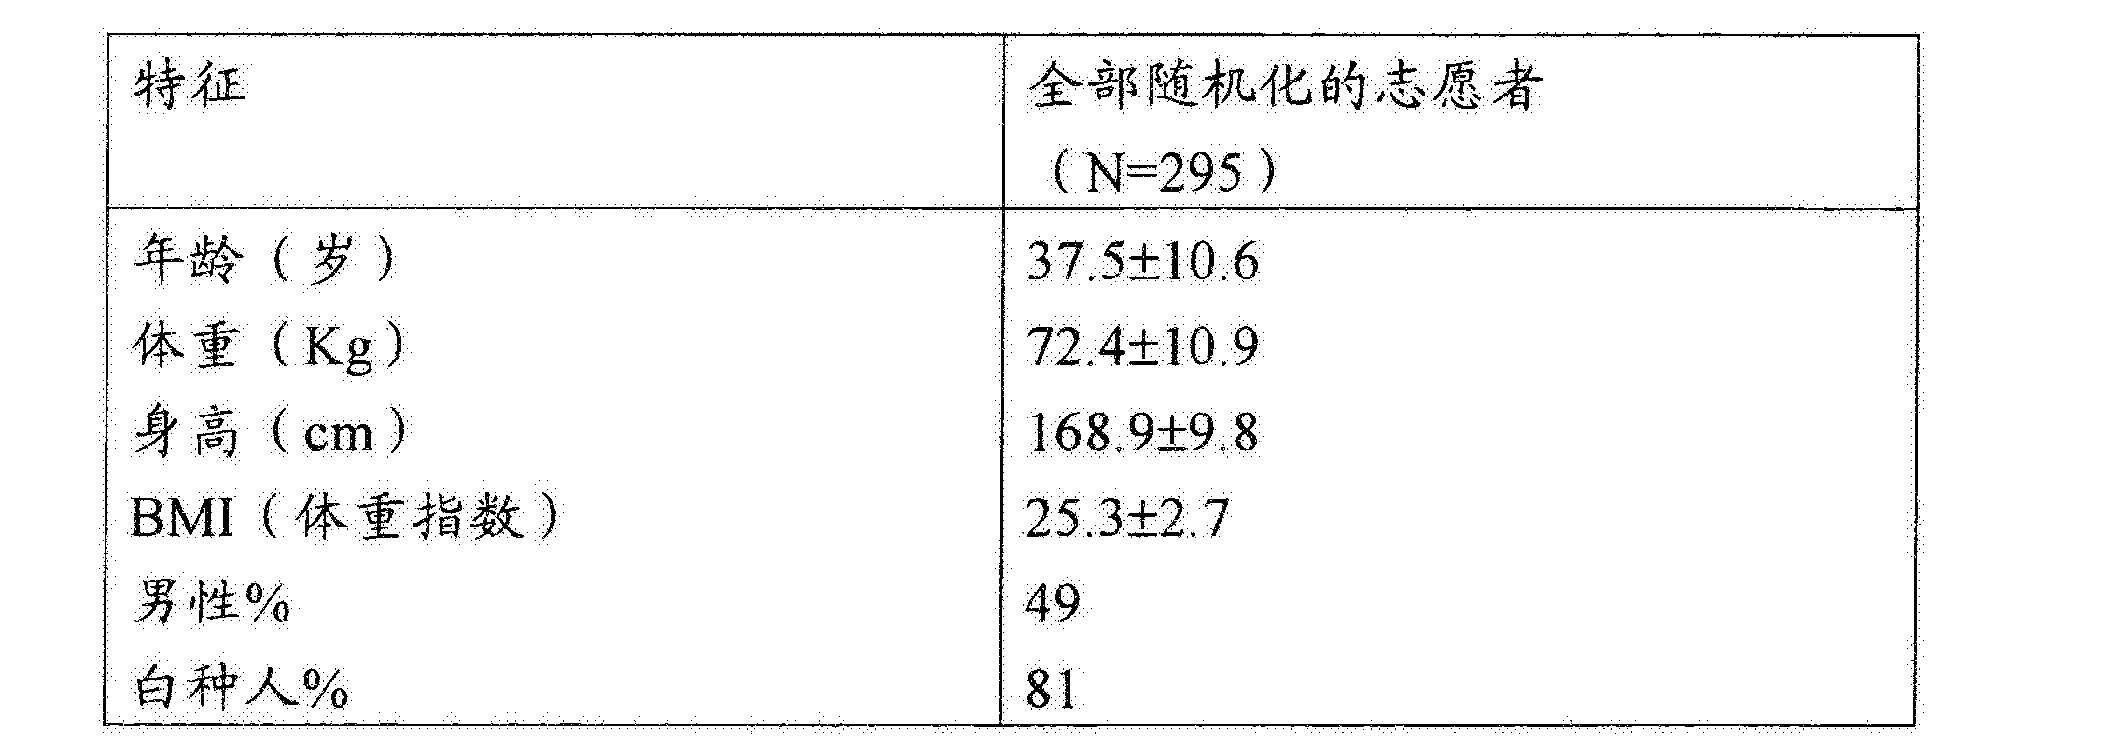 CN107243099A - Automatic injection device - Google Patents